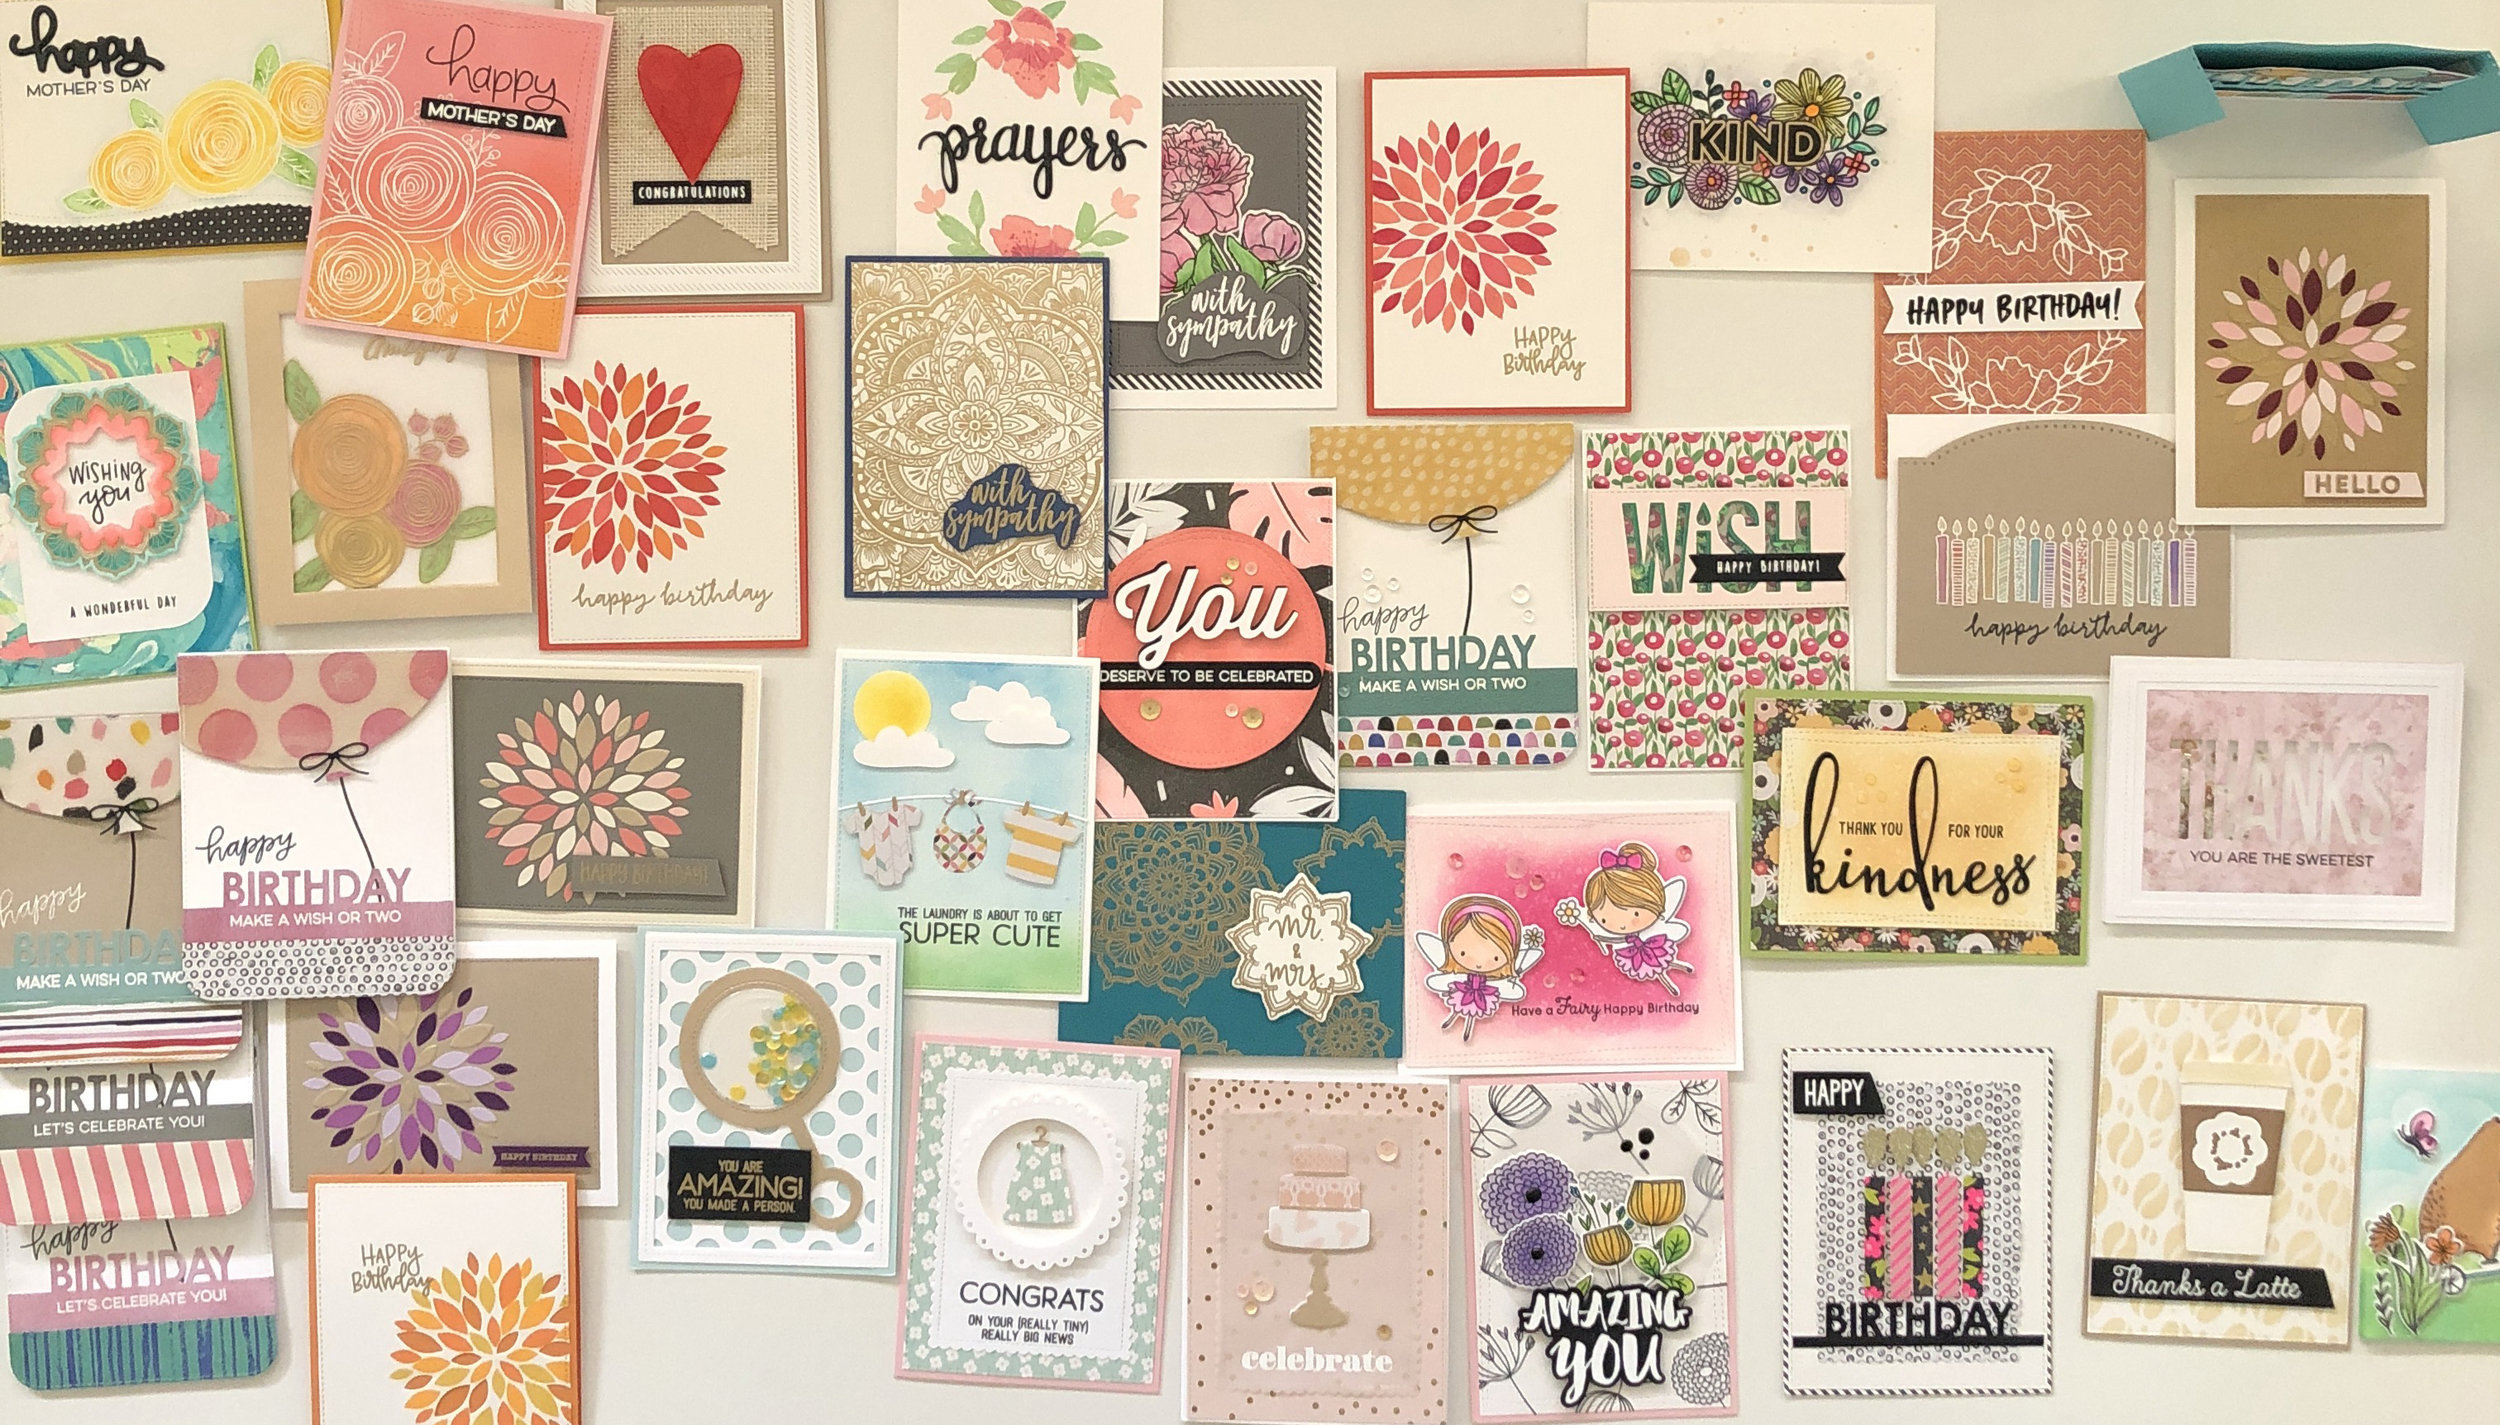 assortment of handmade greeting cards